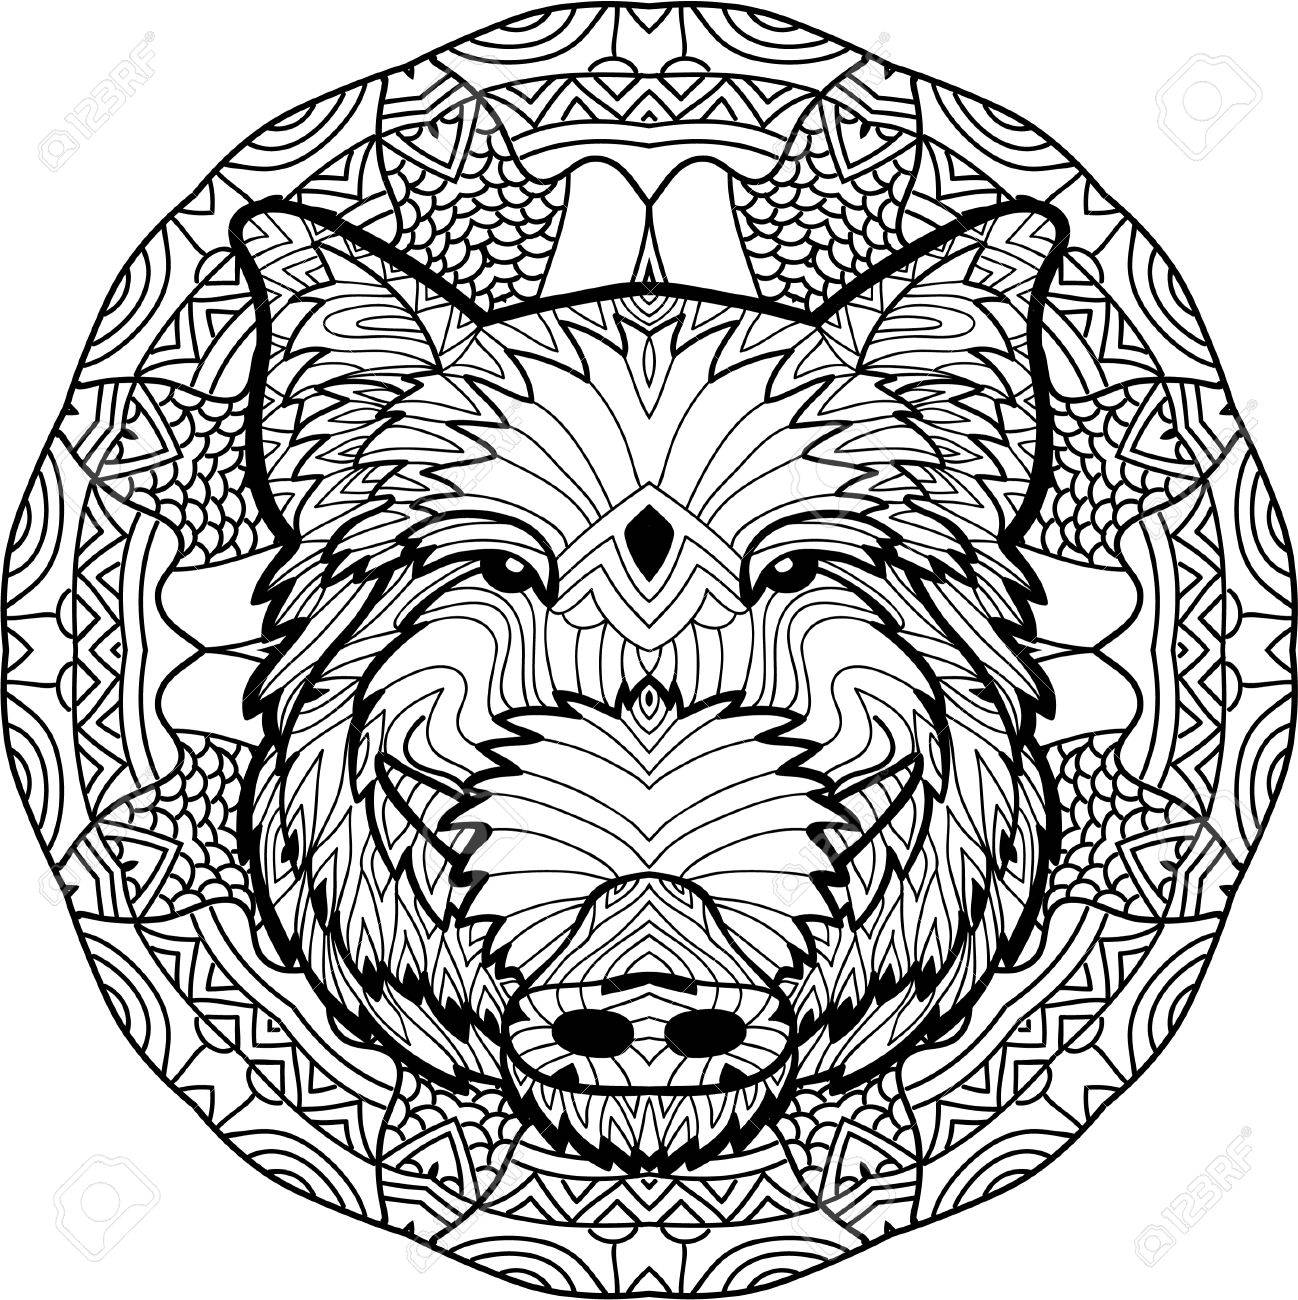 1298x1300 Monochrome Drawing With National Patterns. Painted Boar On